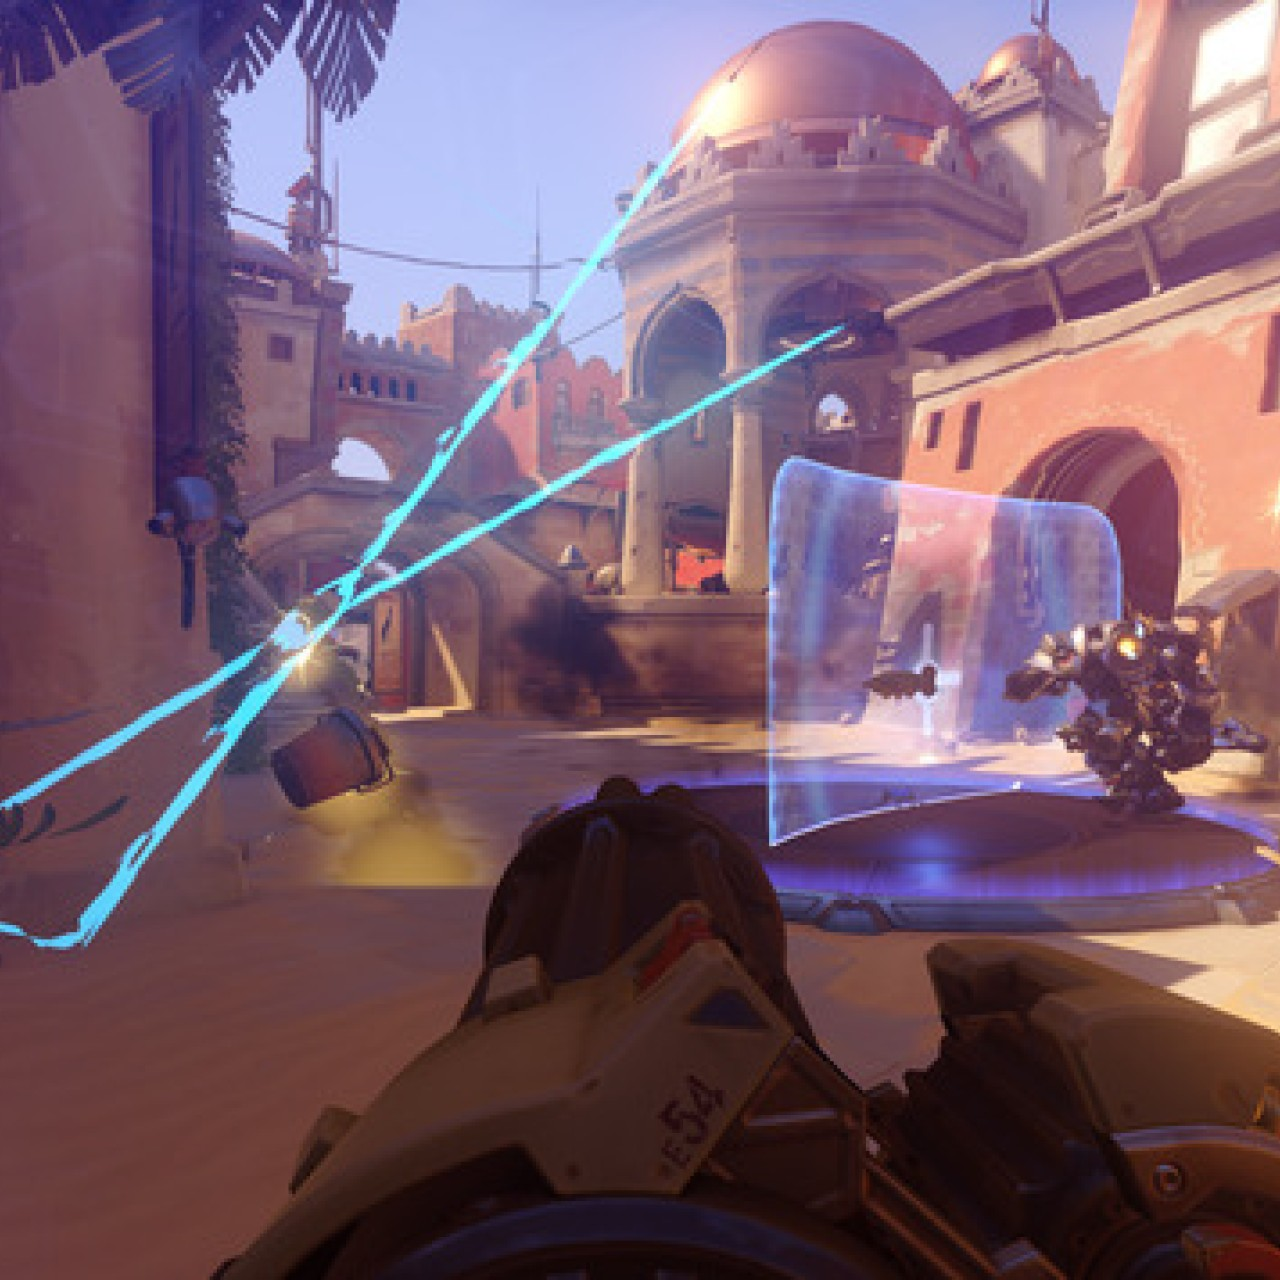 With Overwatch deal, China's NetEase throws down gauntlet to rival